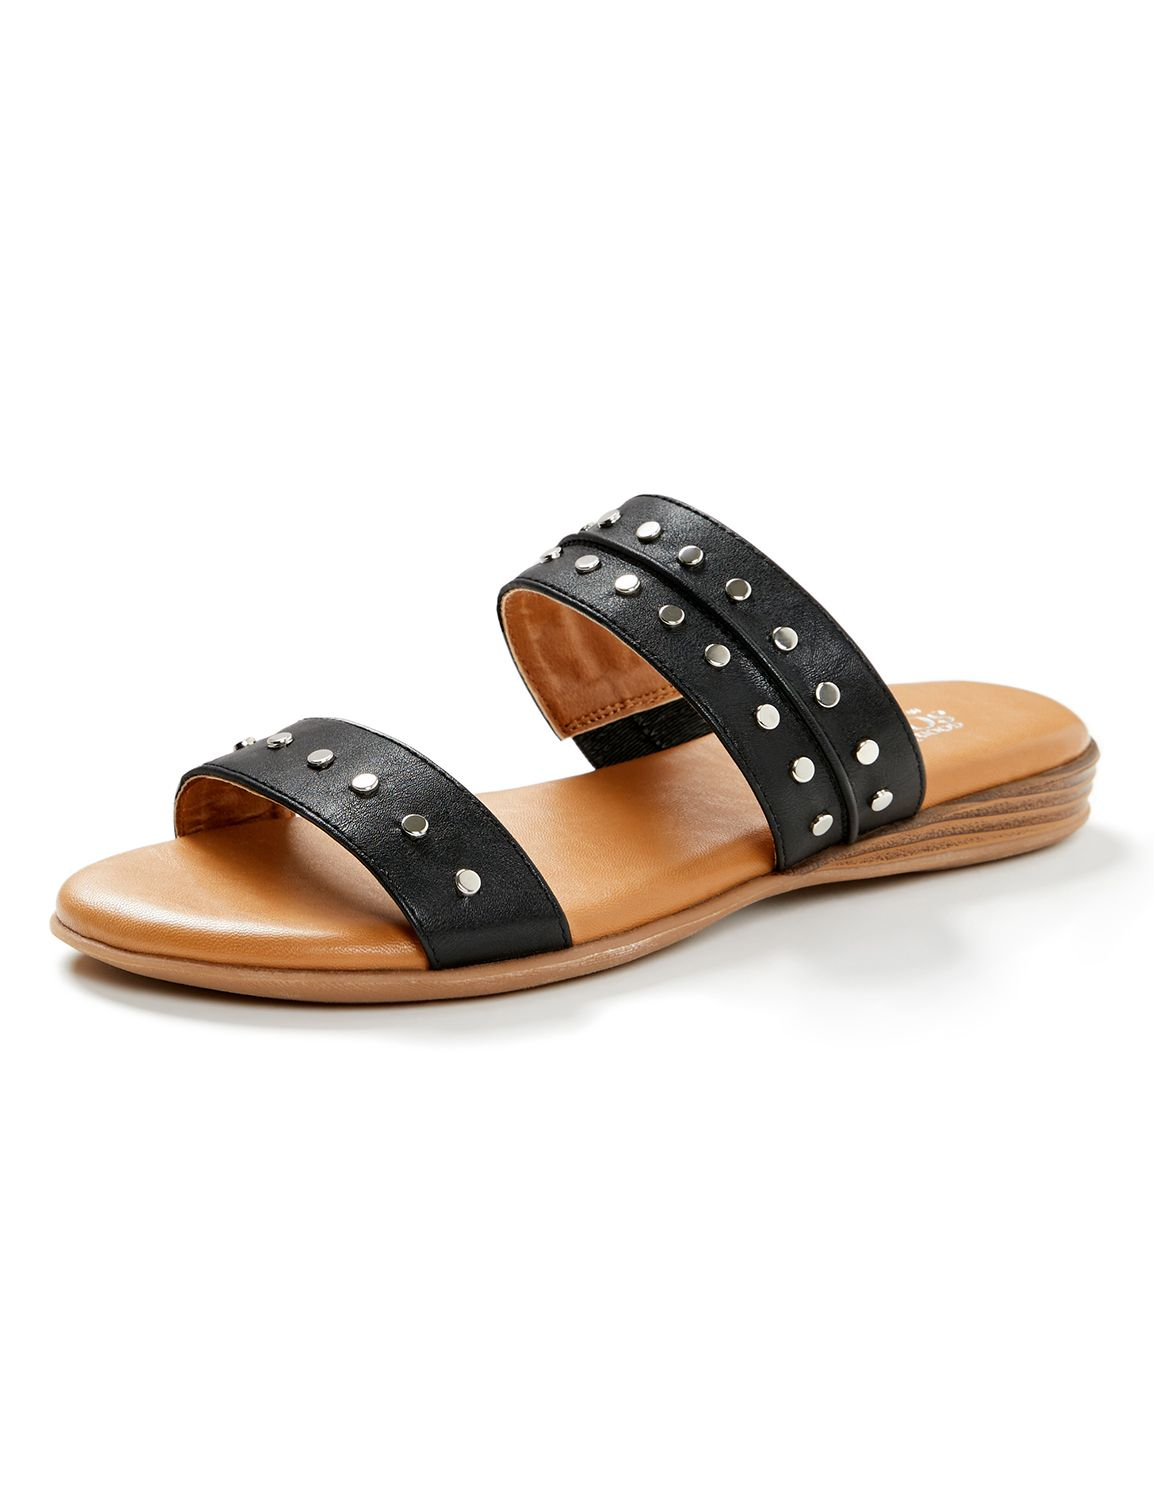 Good Soles Studded Sandal Double Strap w/ Nail Heads Slip on MP-300097245